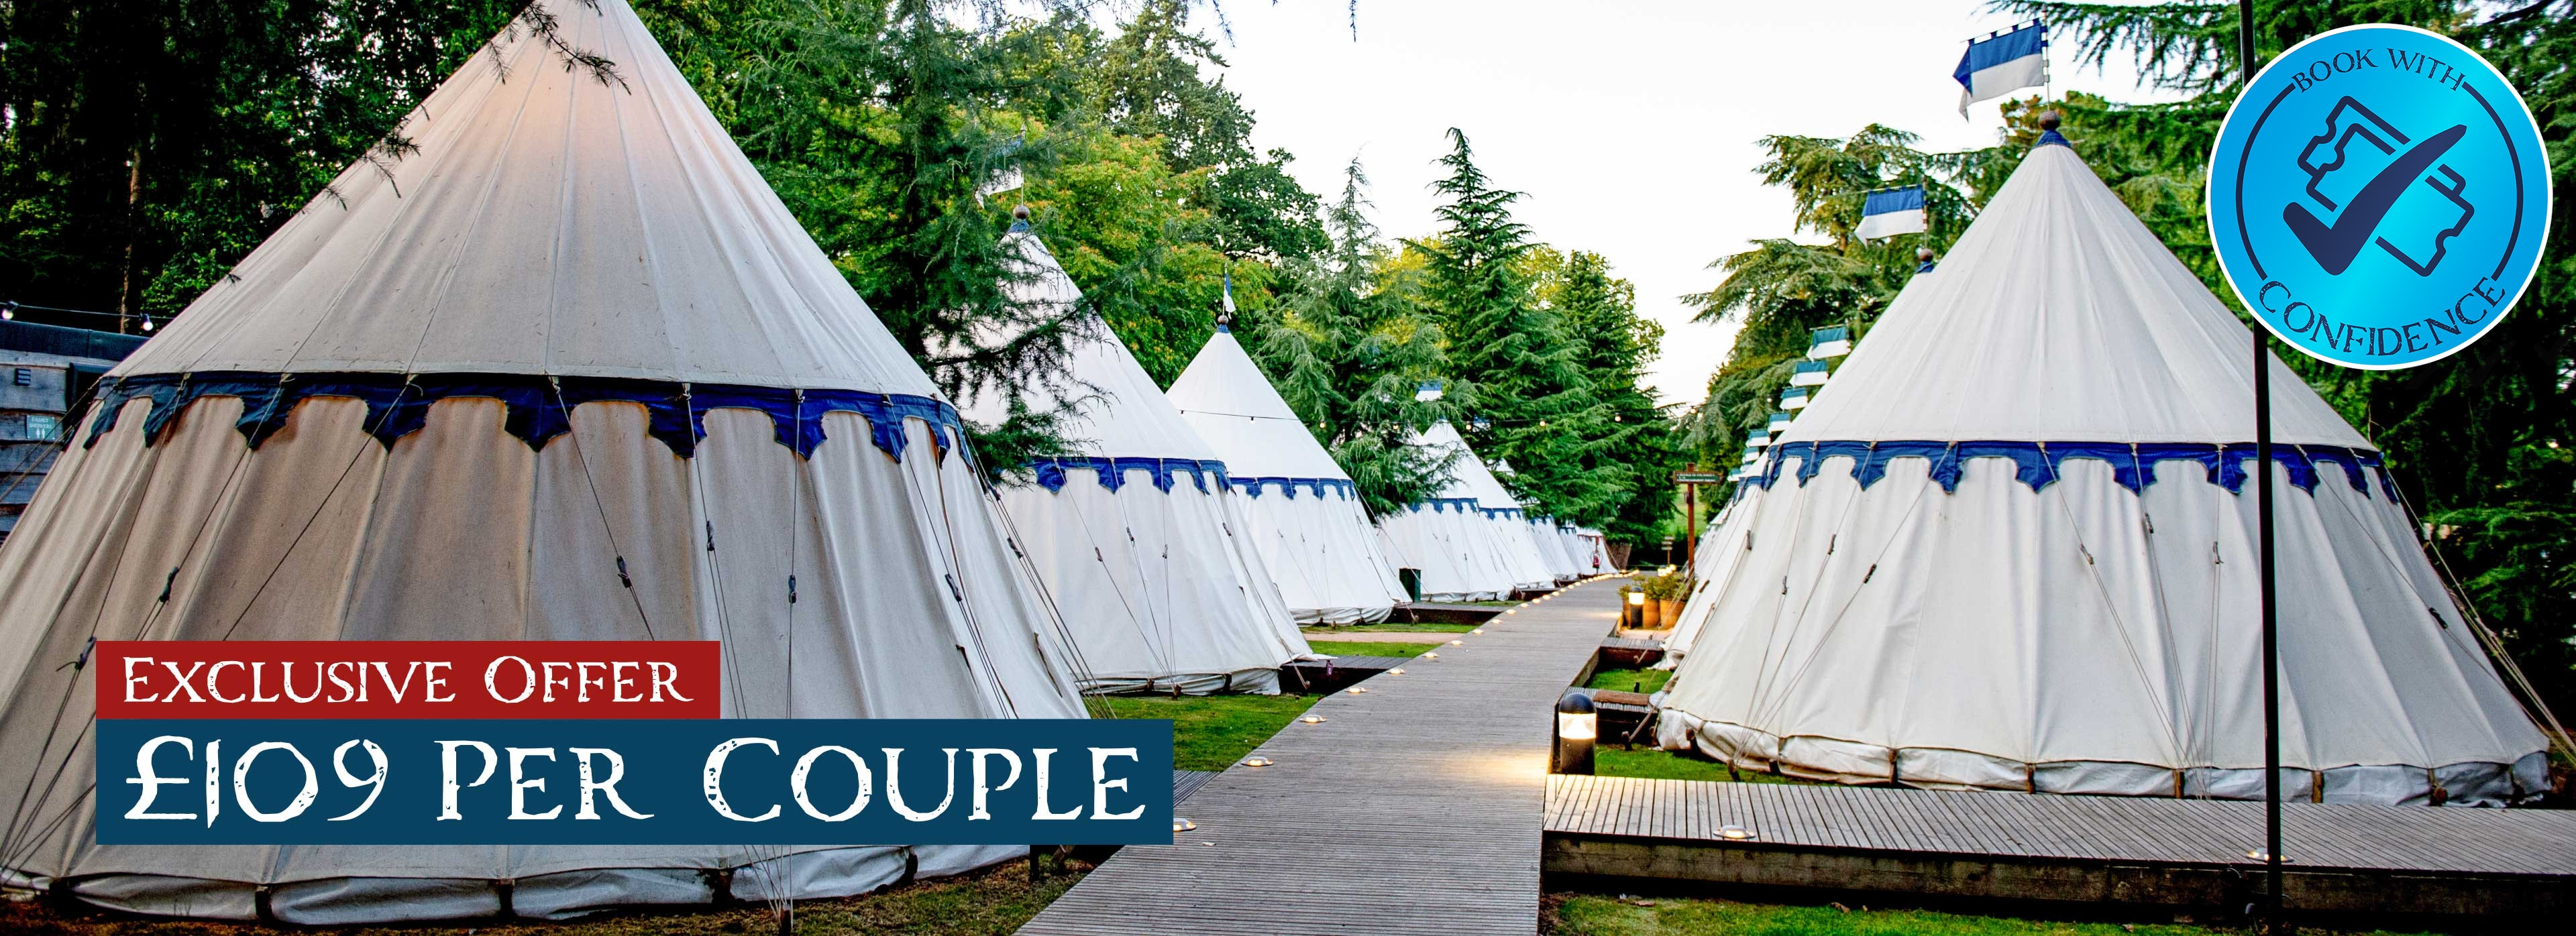 Exclusive Travelzoo offer with Warwick Castle Breaks